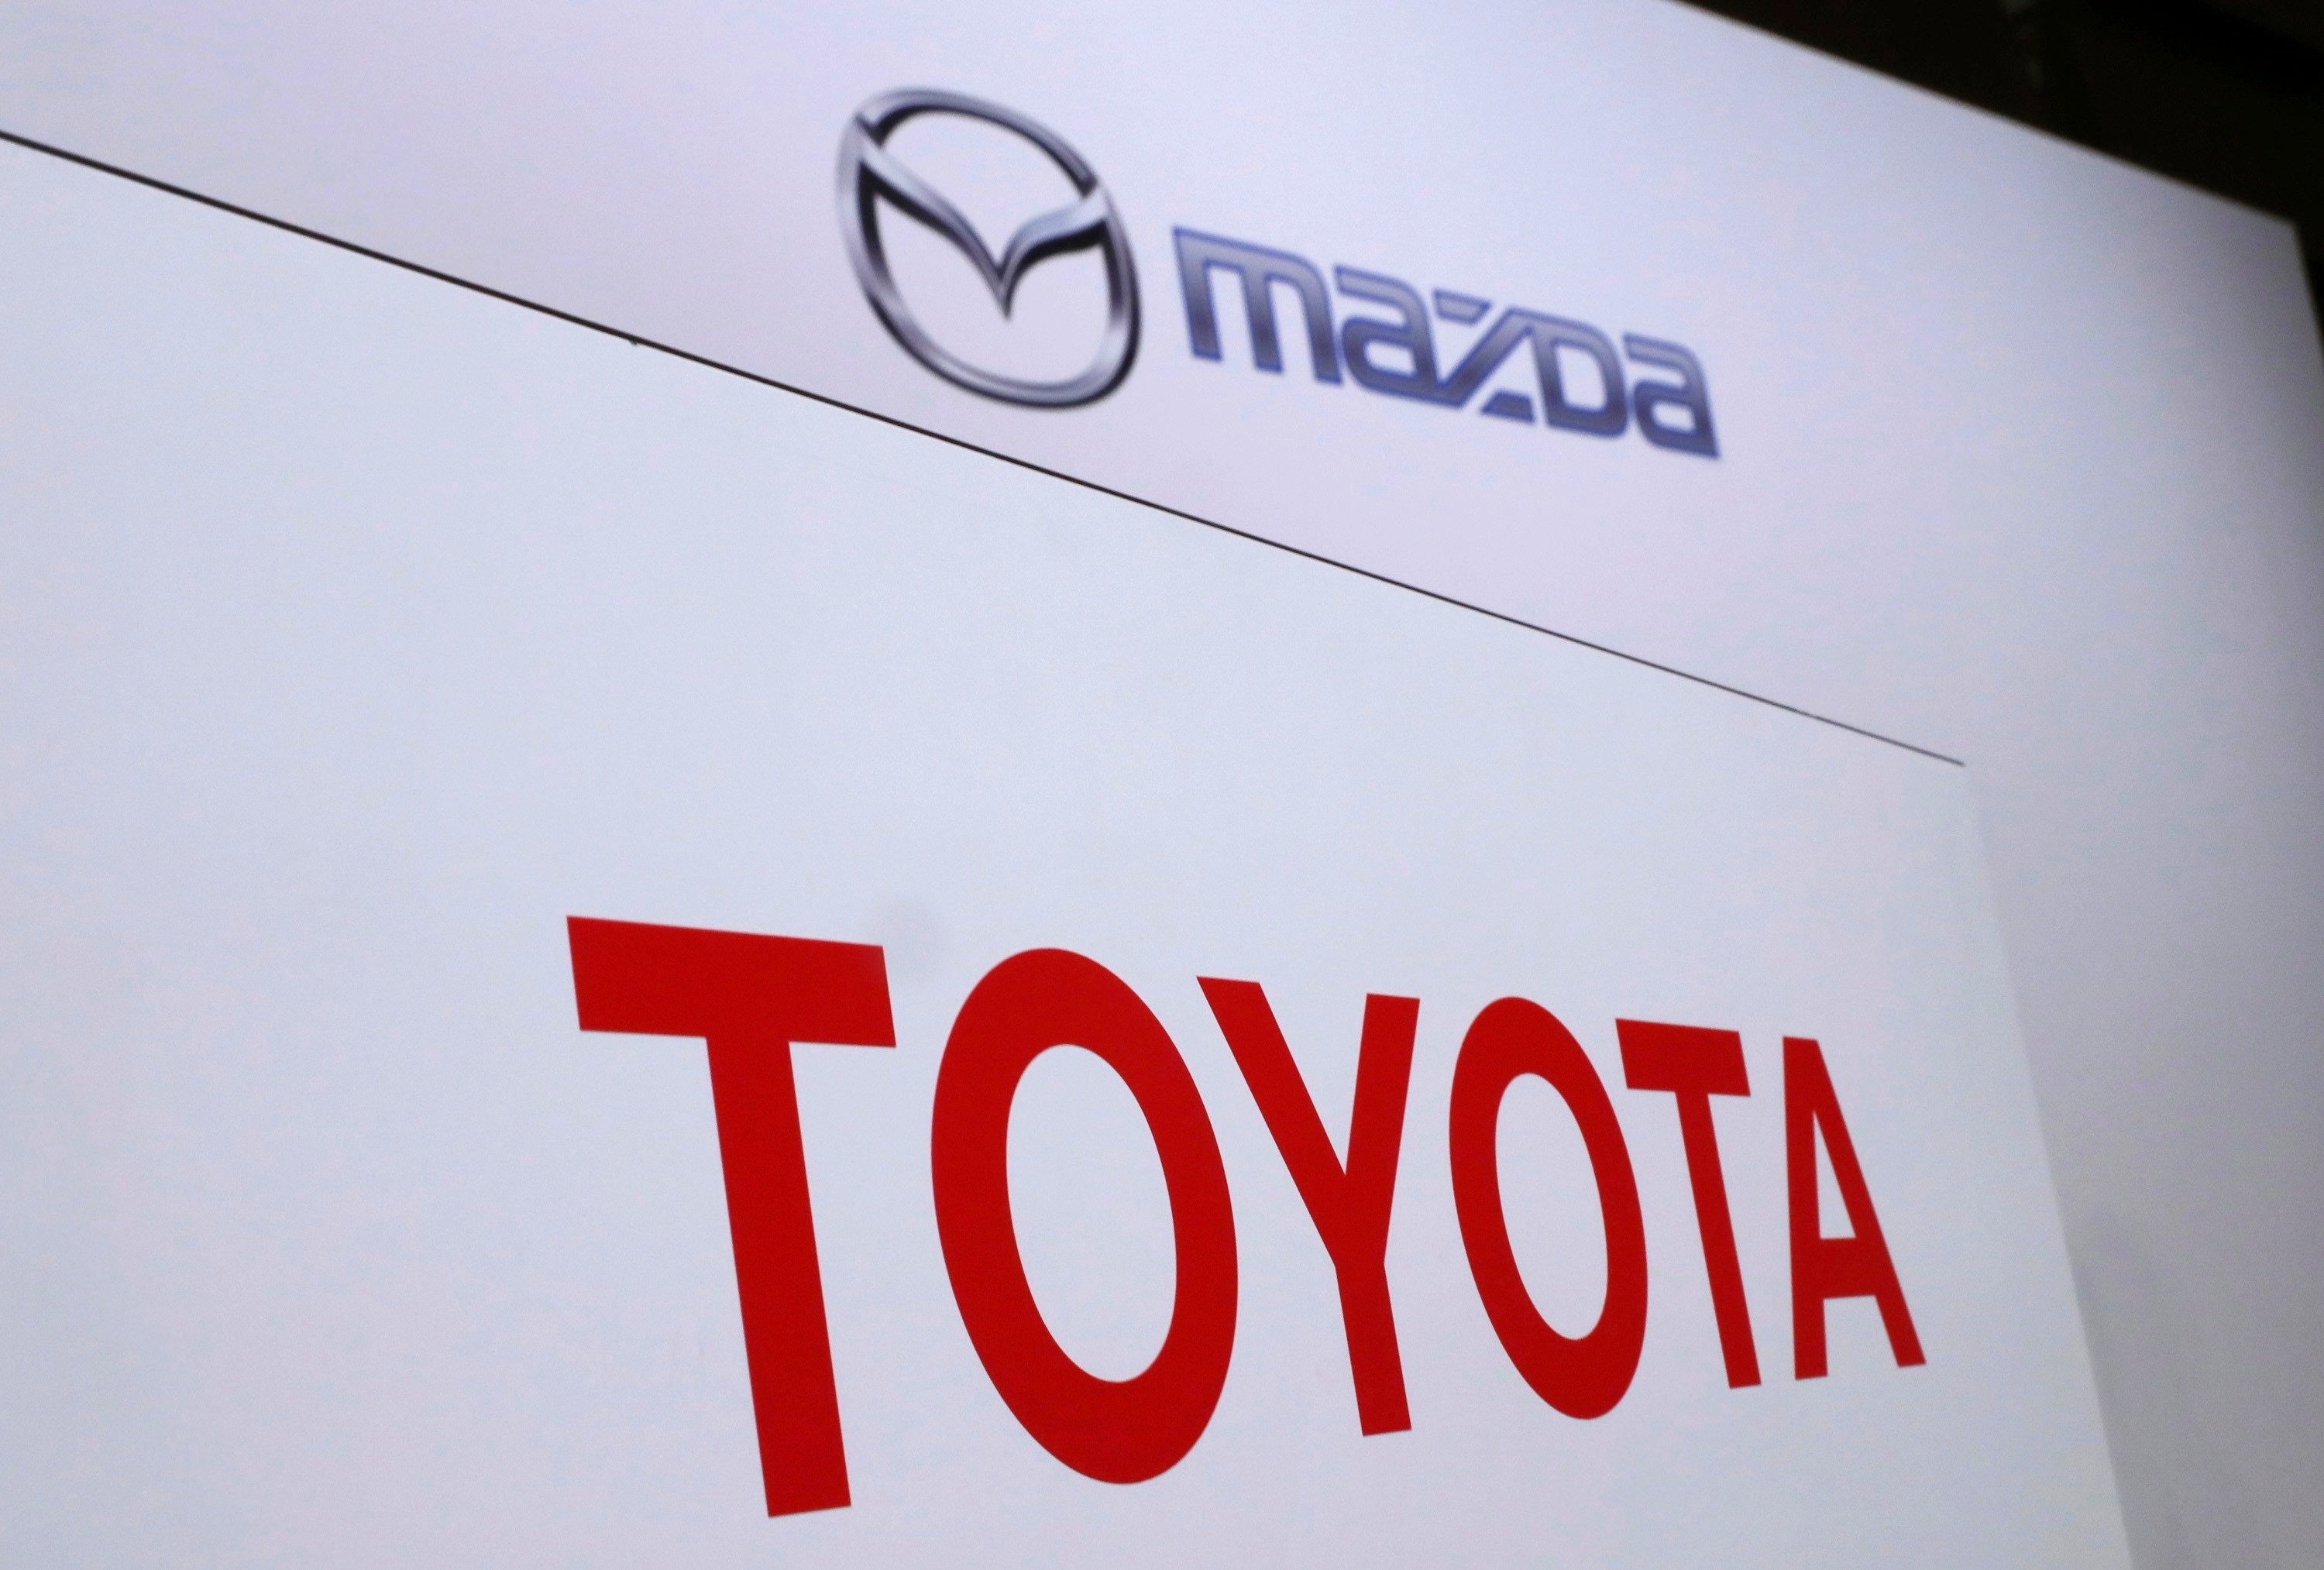 Sweet Home Alabama: Toyota And Mazda Building New $1.6 Billion Plant